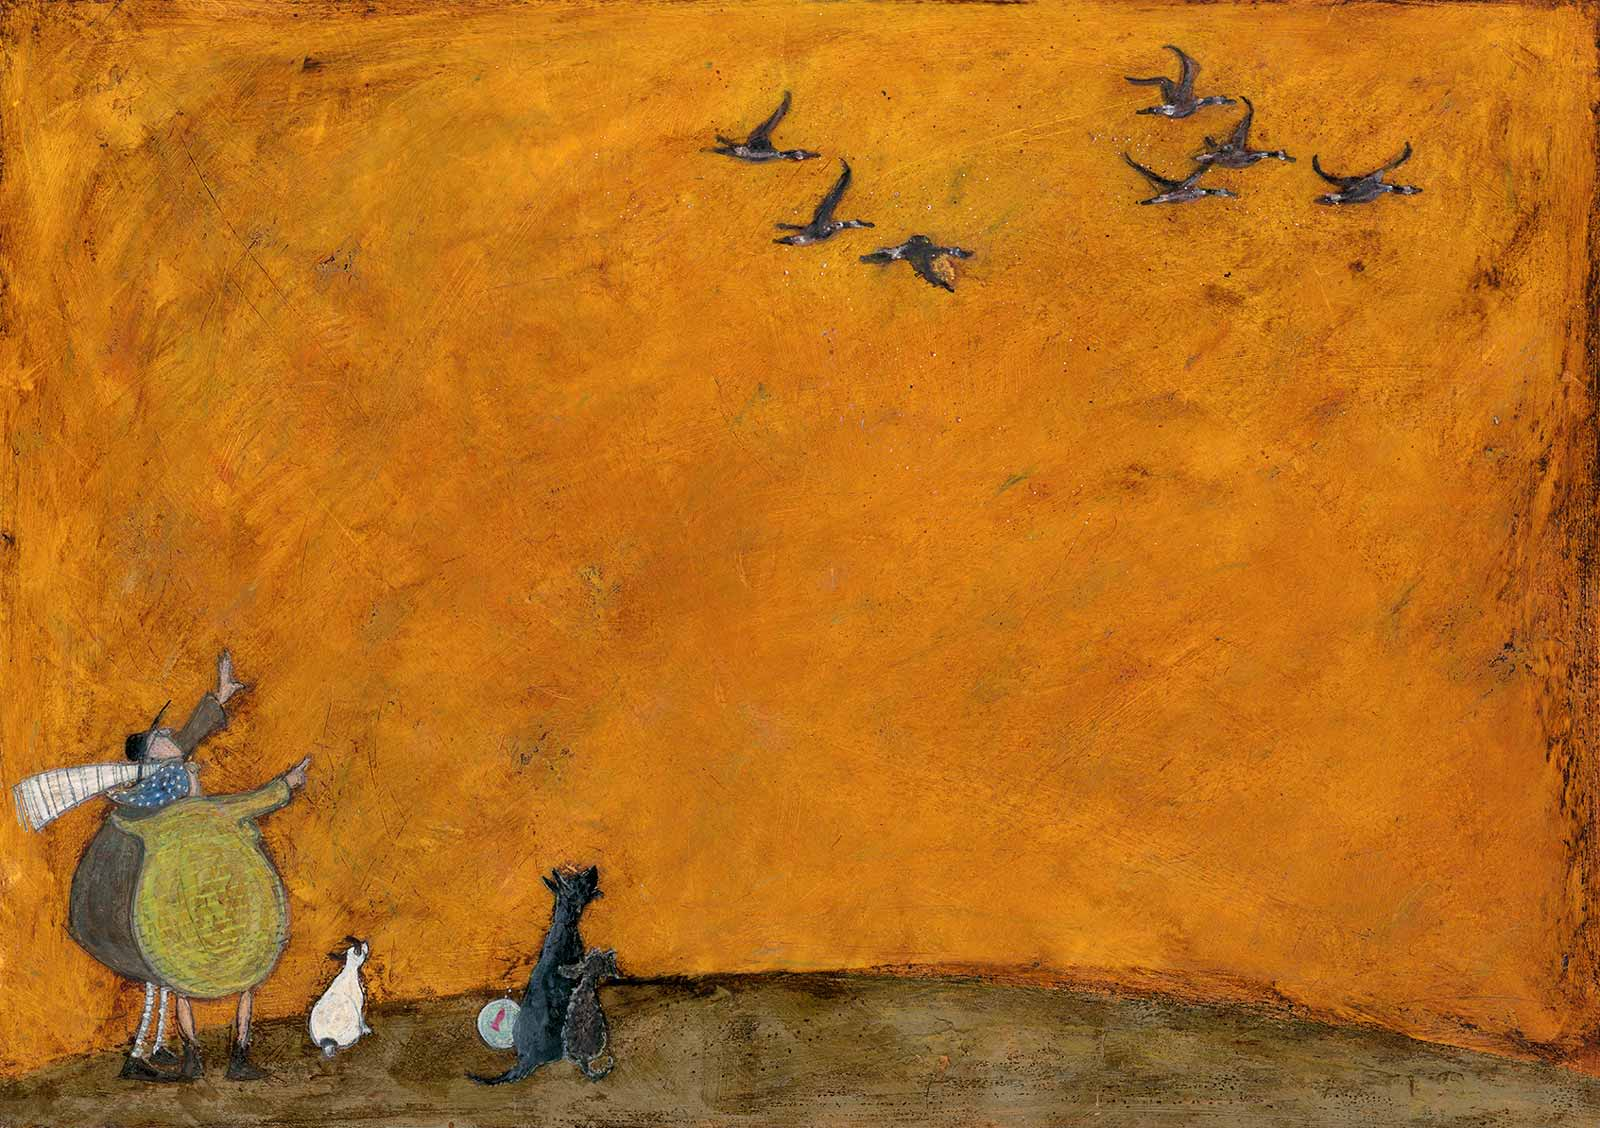 Until We Meet Again, Sam Toft